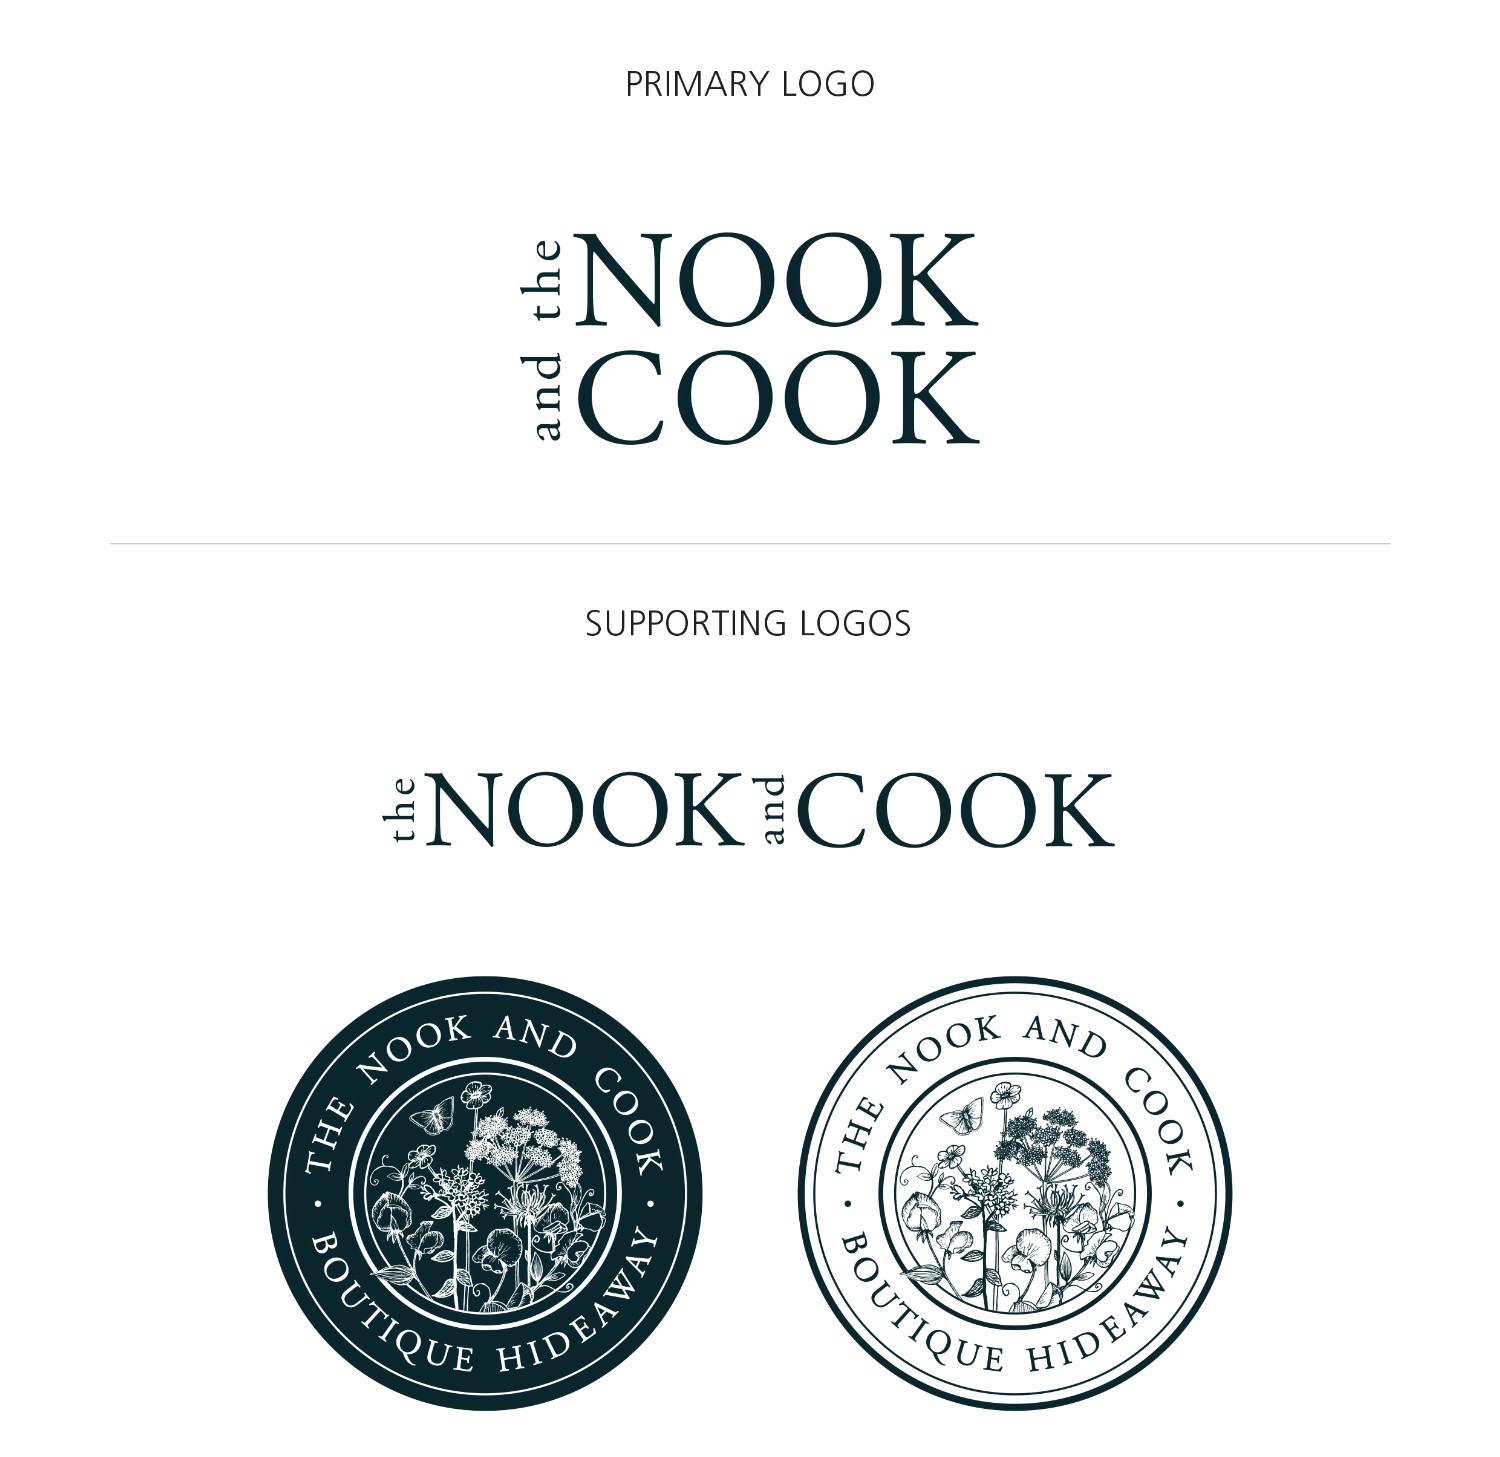 The_Nook_and_Cook_Brand_Guide-5_1.jpg